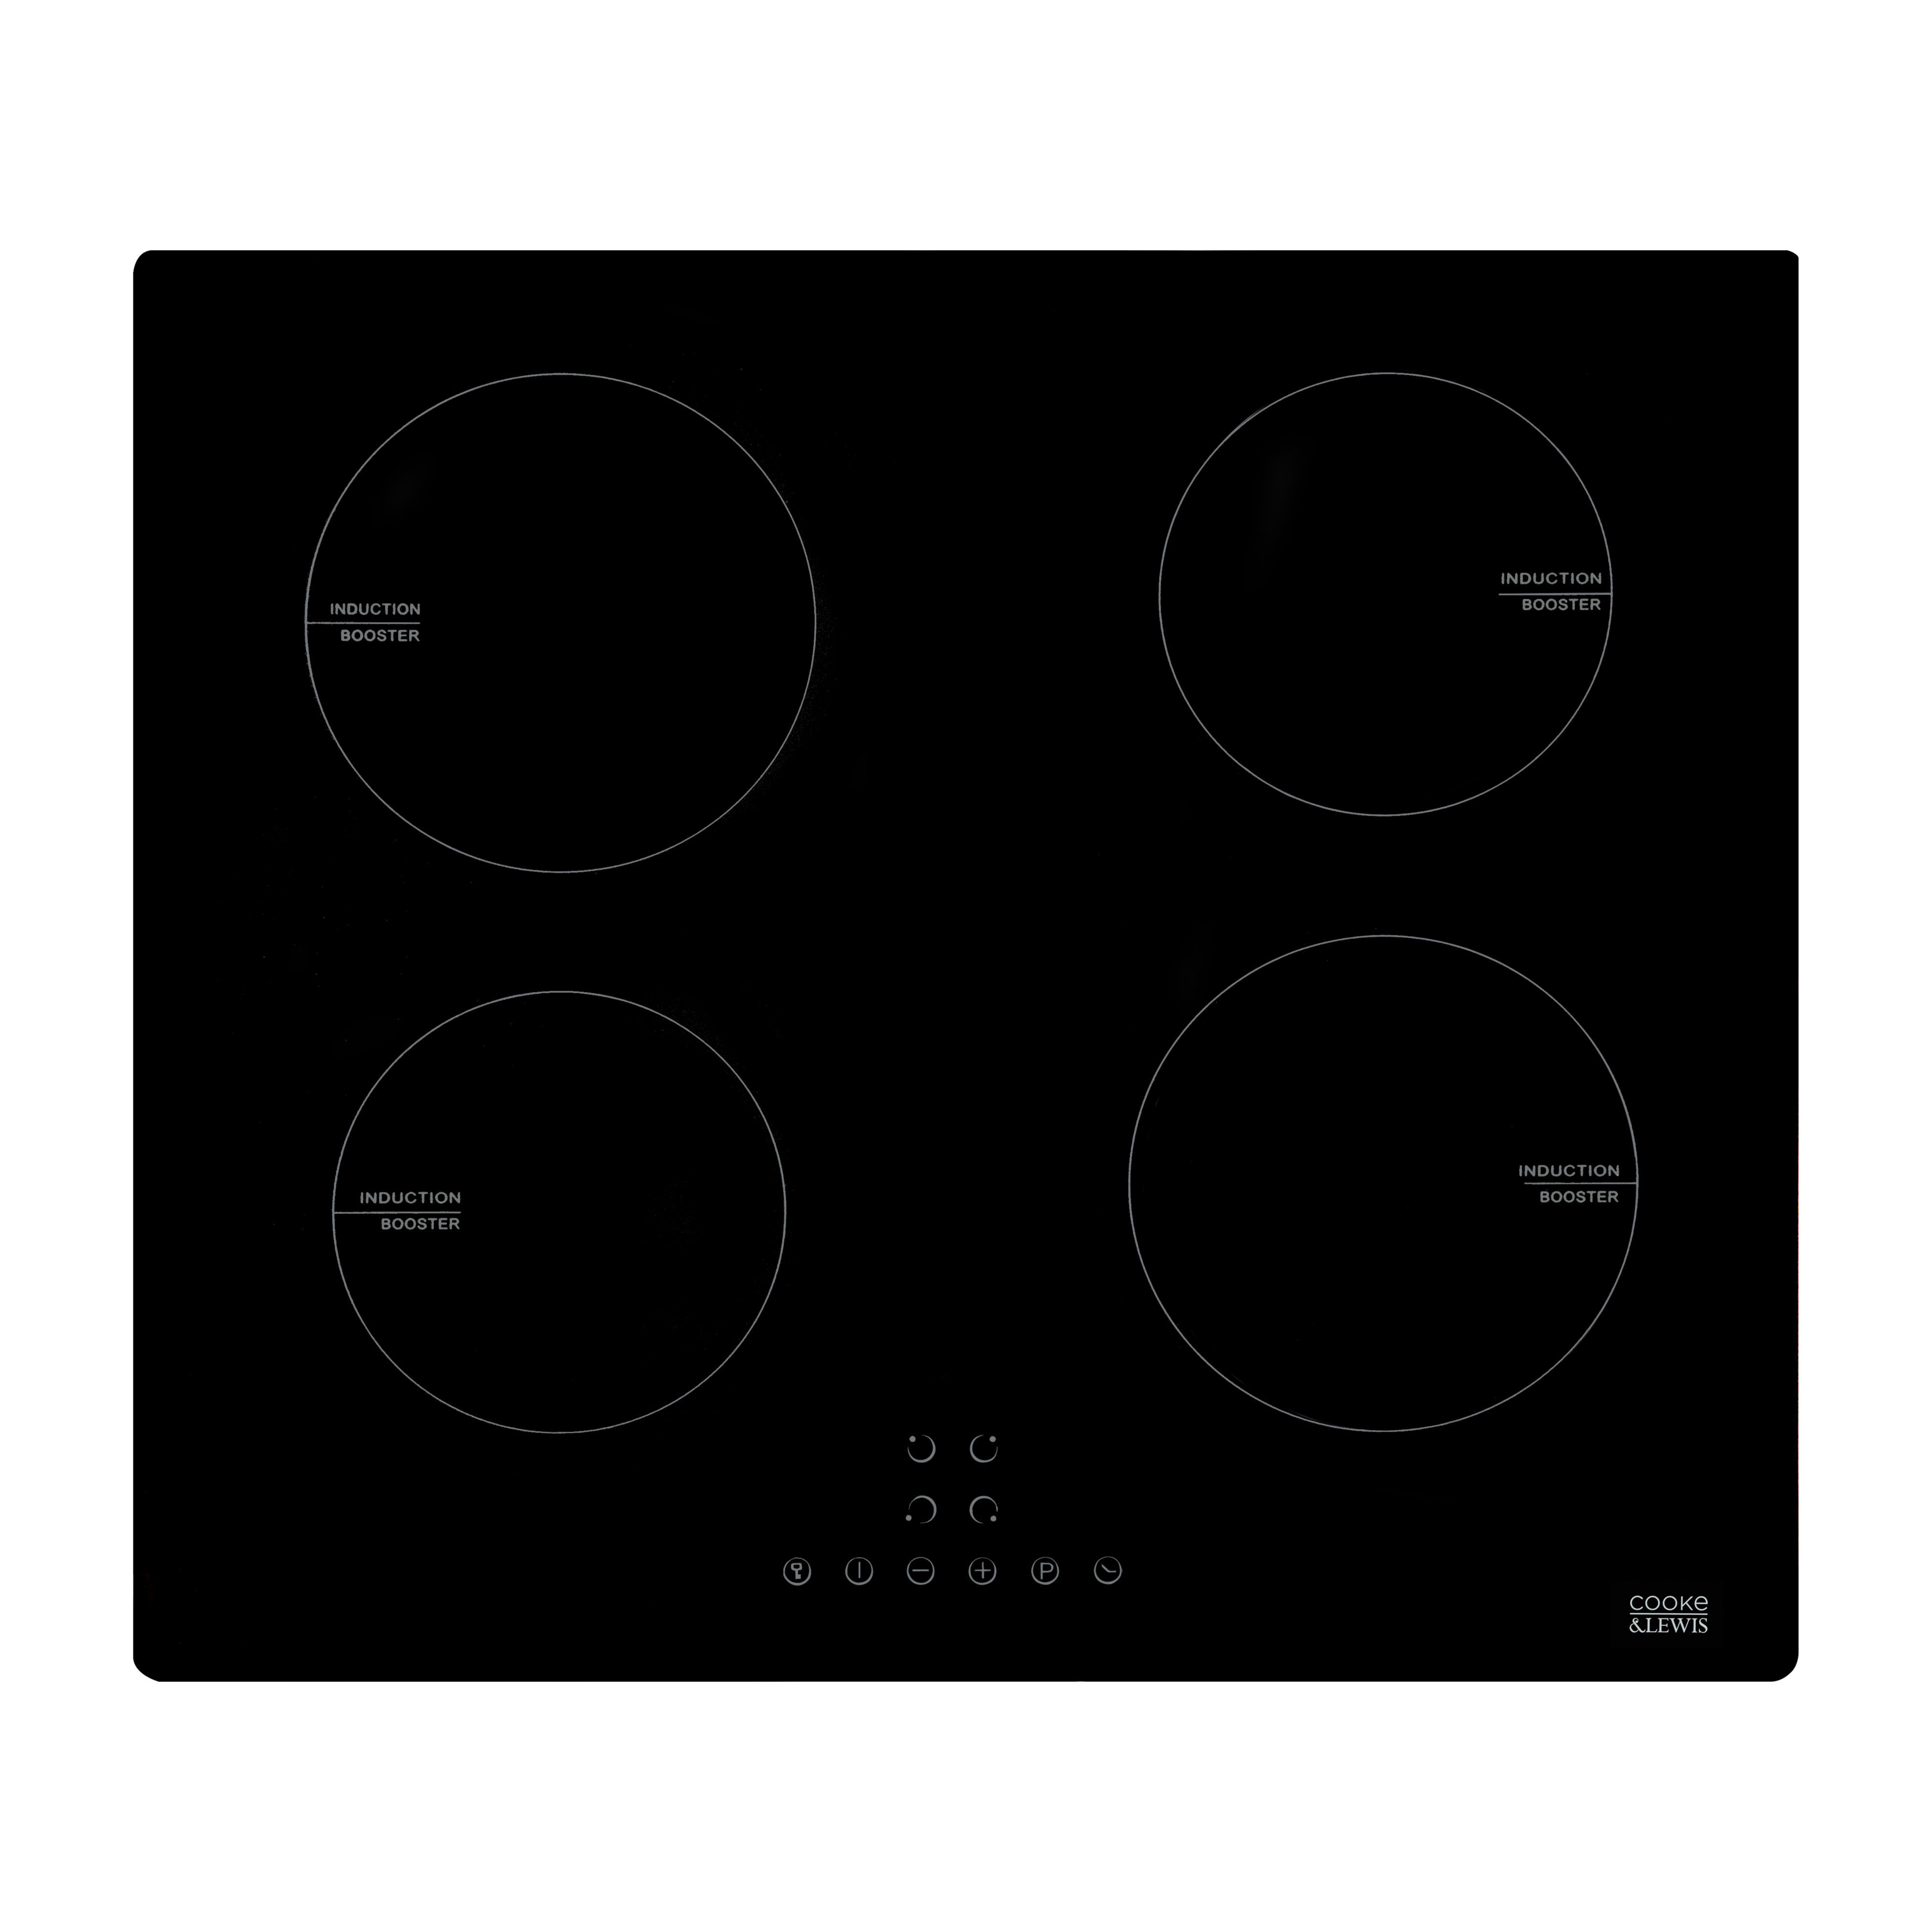 Cooke Lewis Clind60 4 Zone Black Glass Induction Hob W 590mm Departments Diy At B Q